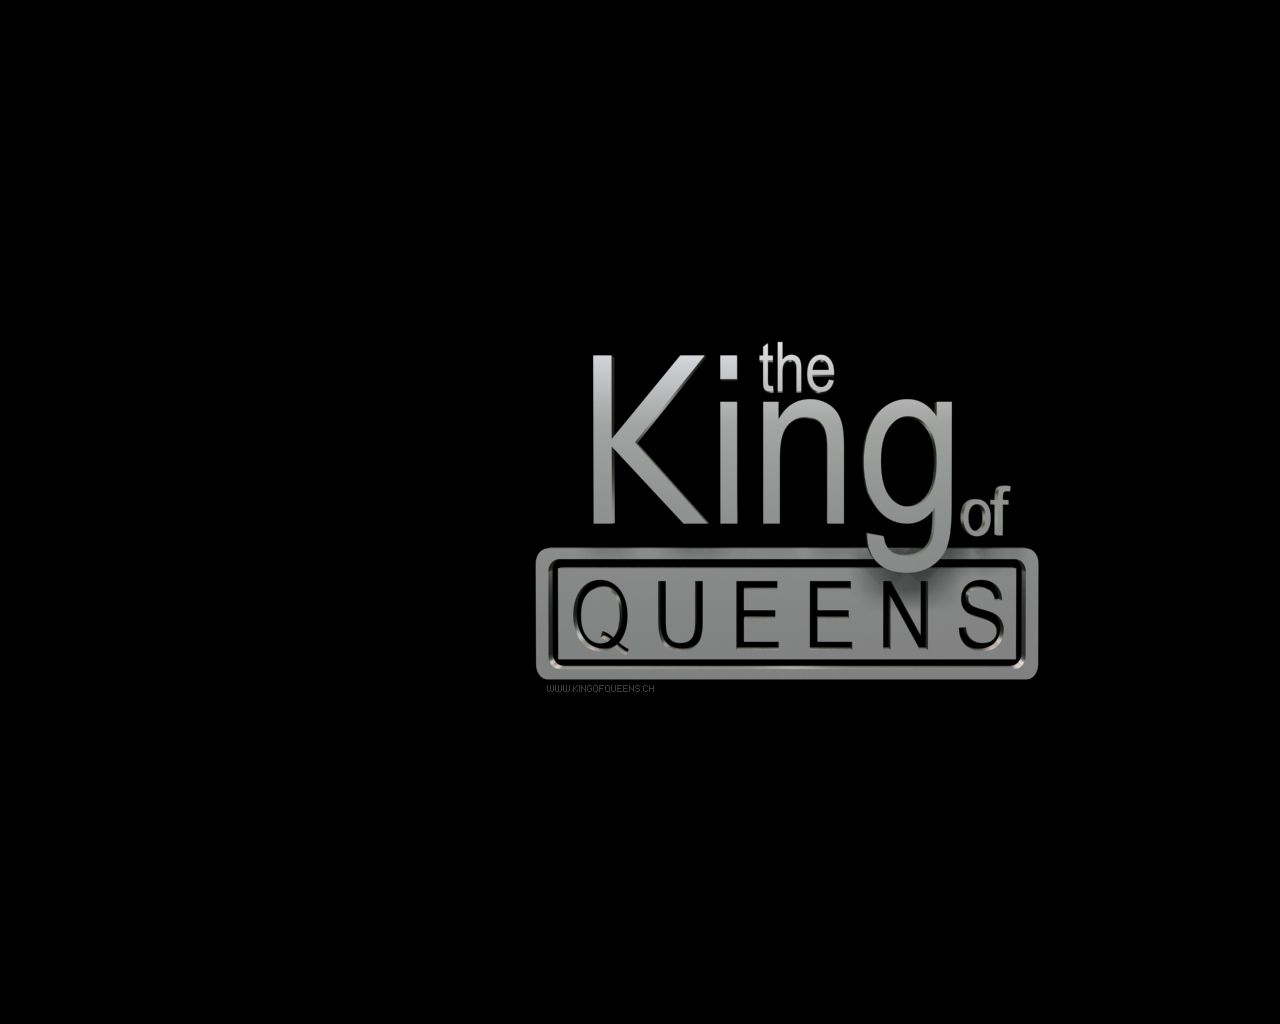 1280x1024 96+] King And Queen Wallpapers on WallpaperSafari